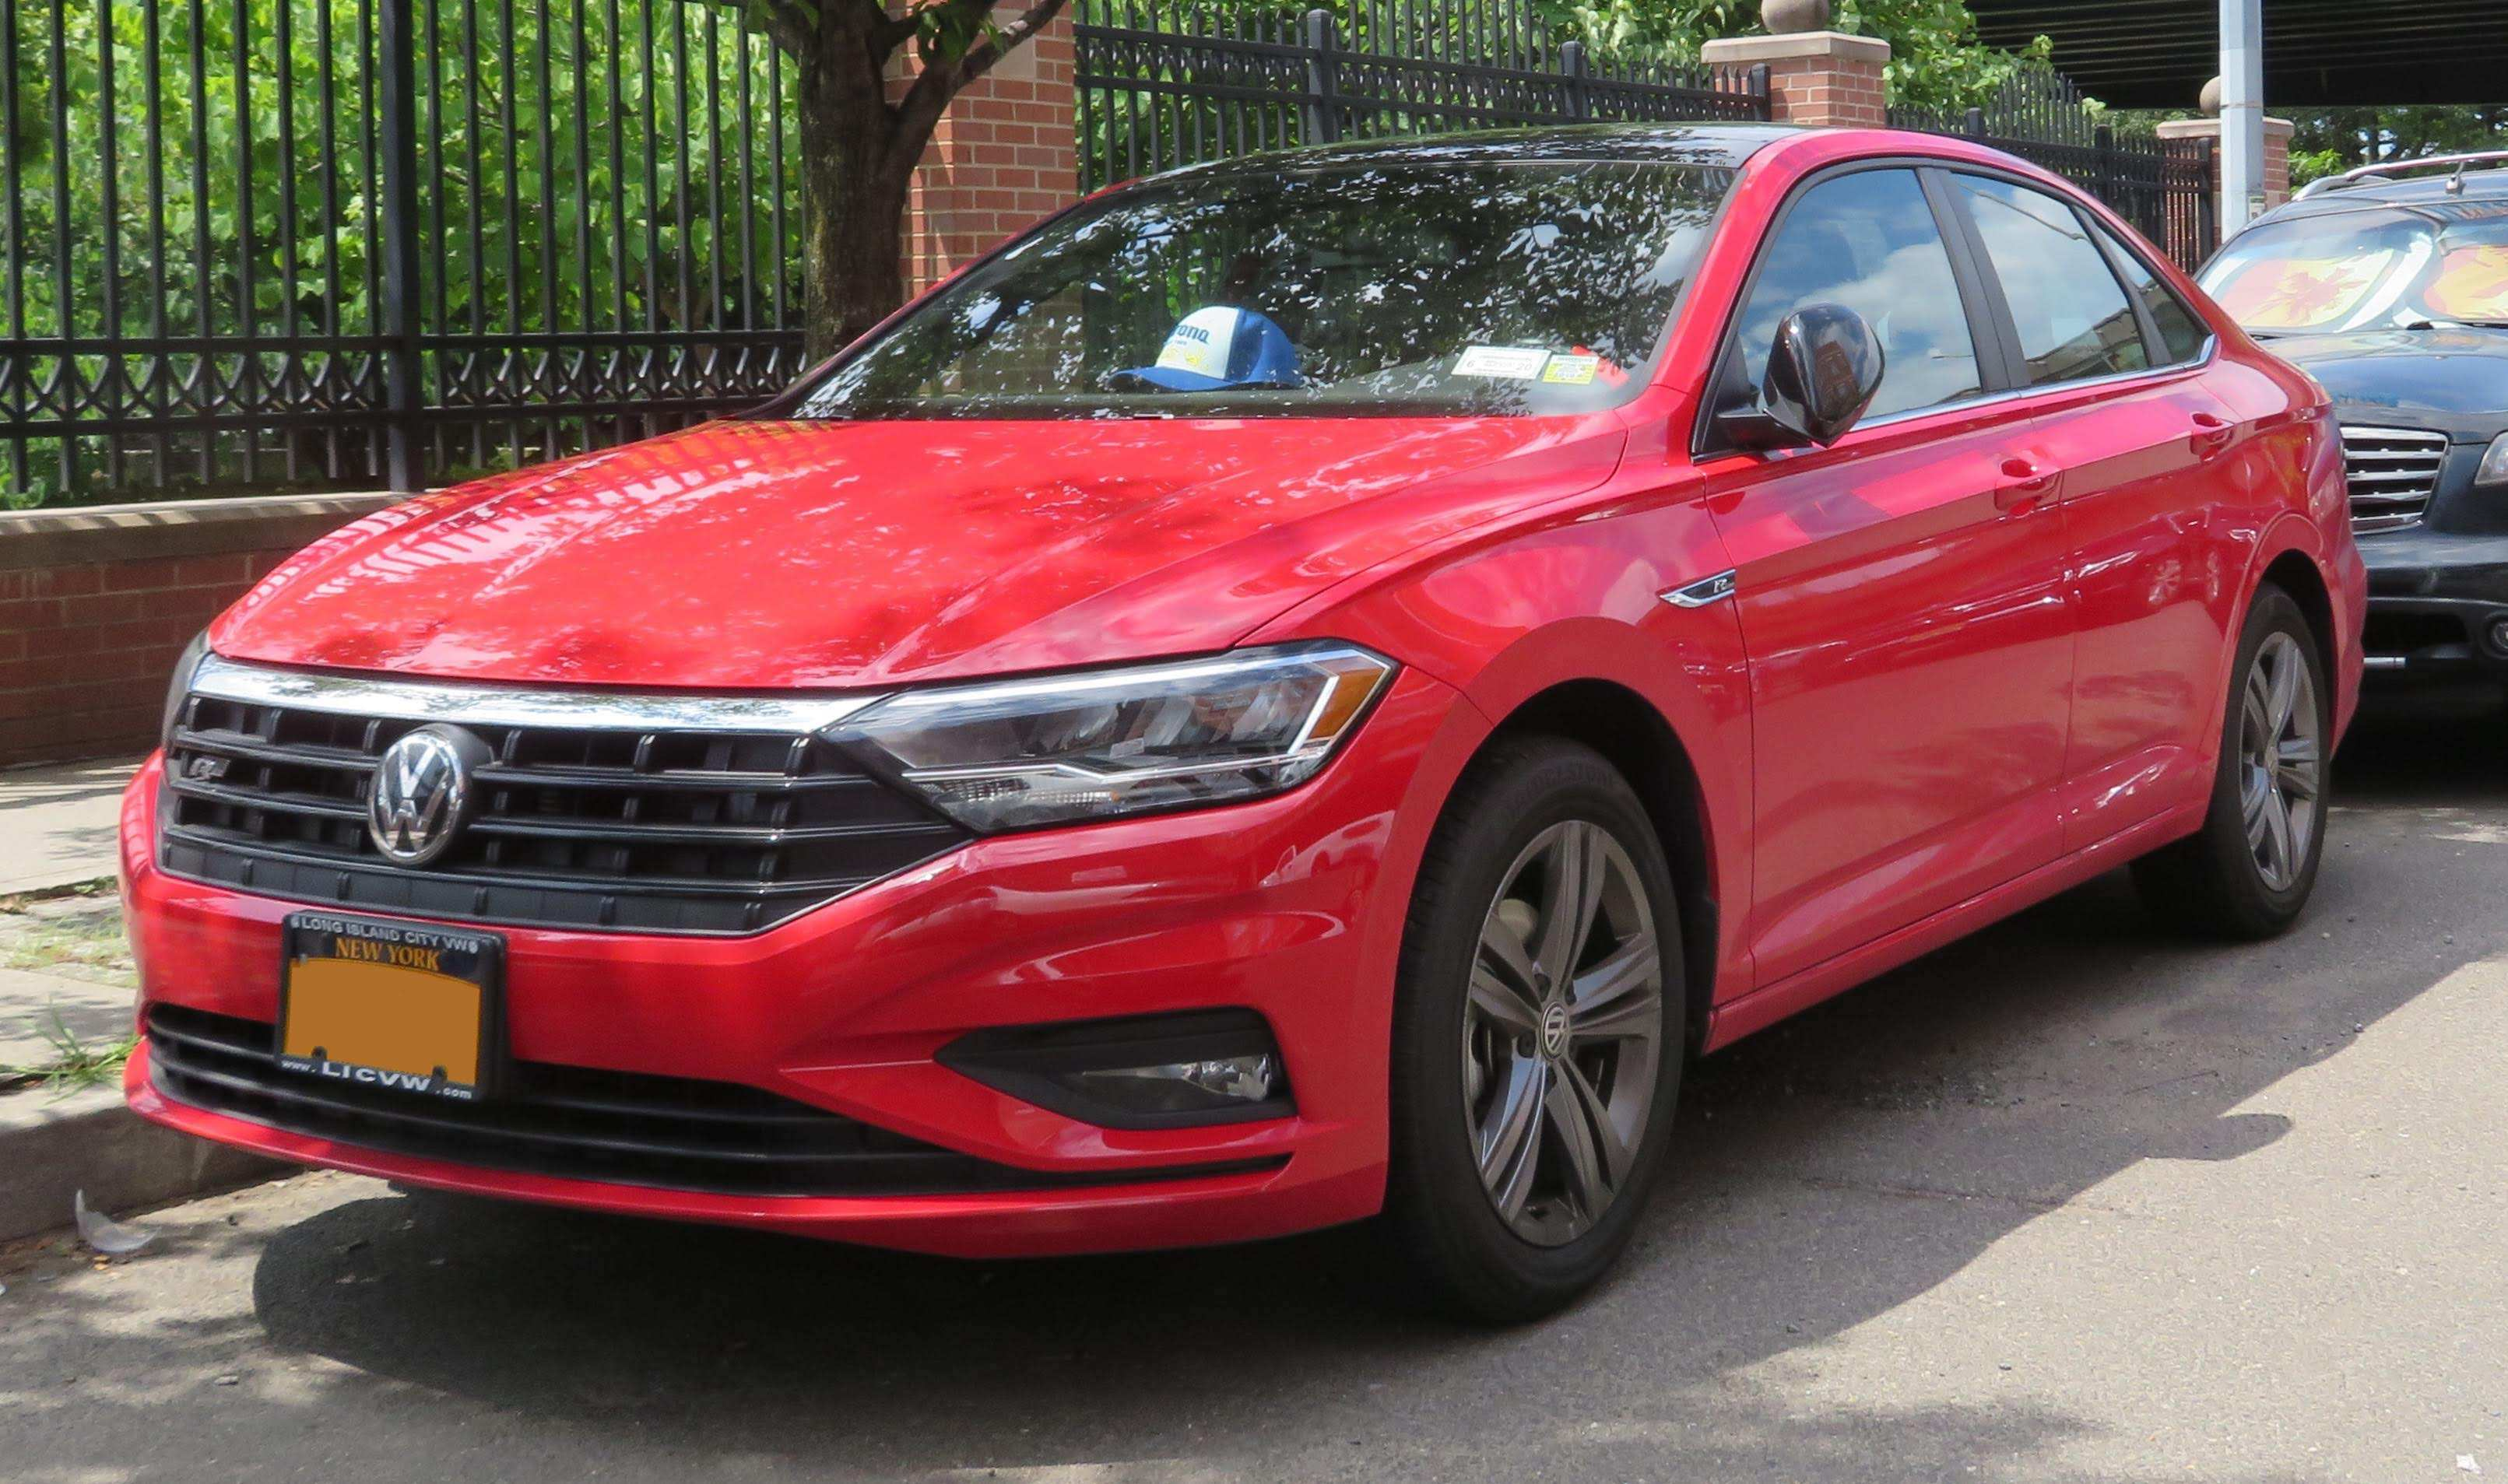 88 Best Review 2019 Vw Jetta Tdi Gli Exterior and Interior with 2019 Vw Jetta Tdi Gli